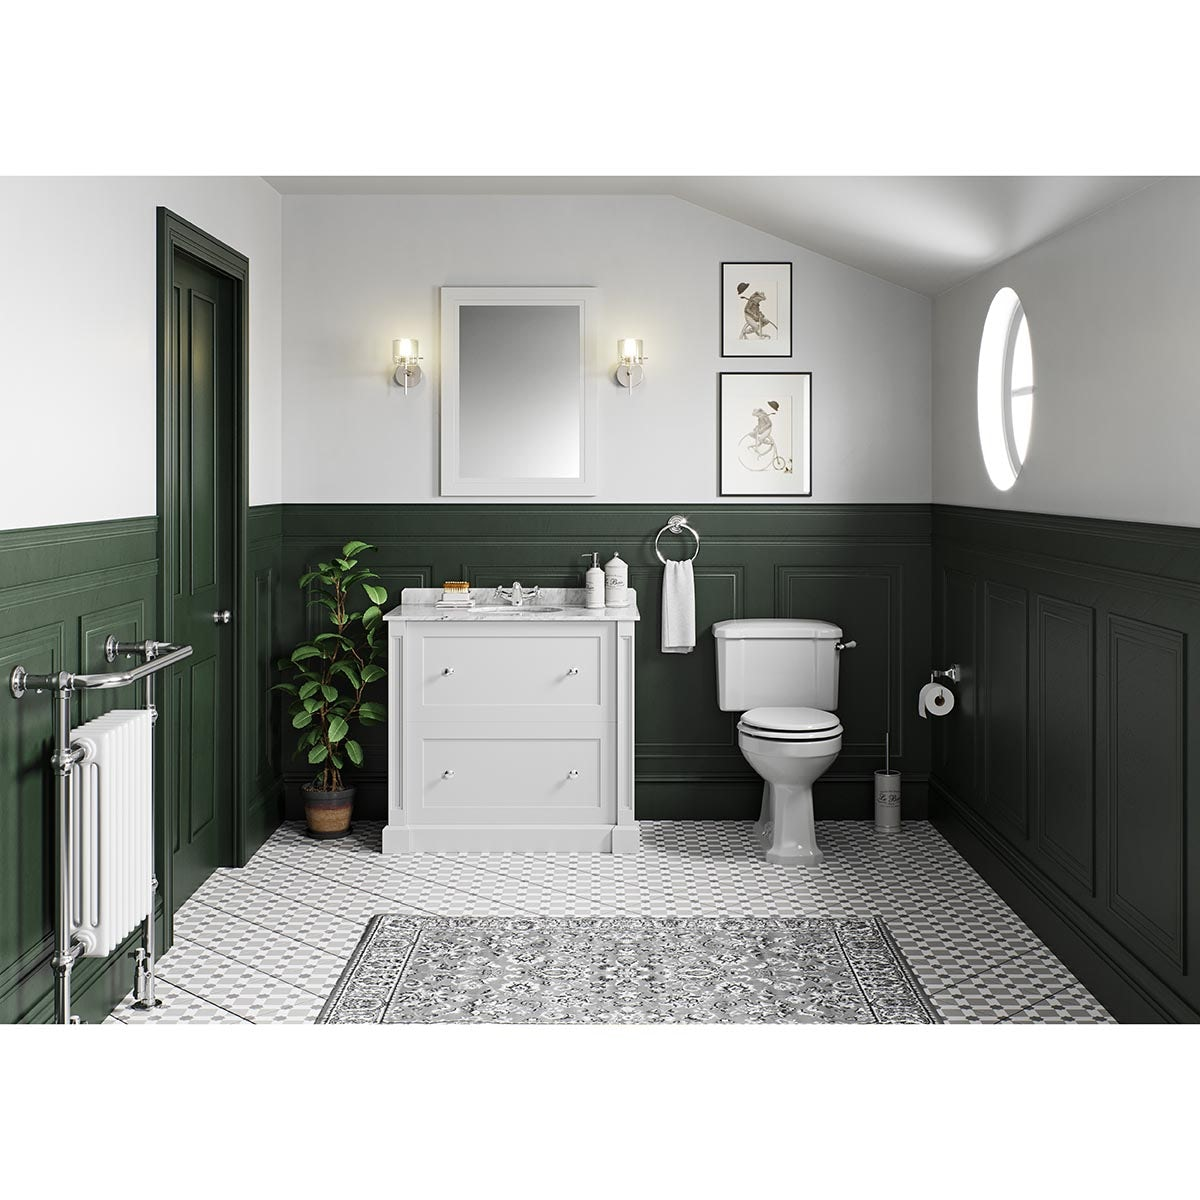 The Bath Co. Camberley toilet and Burghley vanity unit white